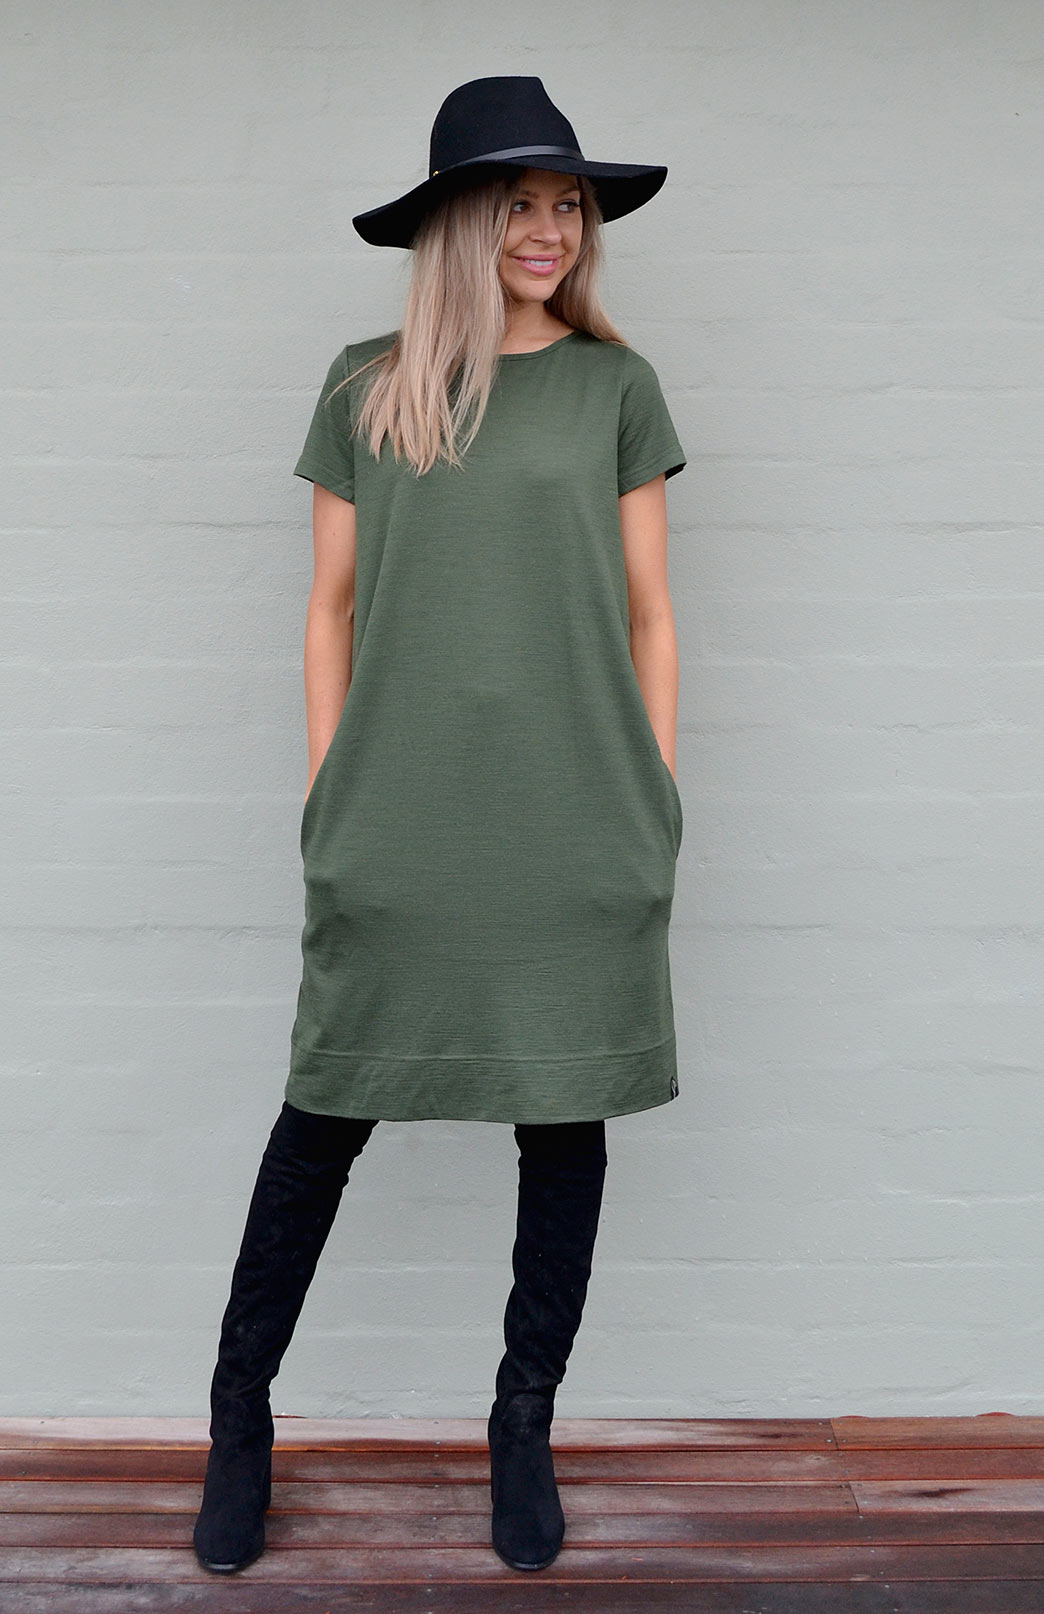 Tiffany Dress - Women's Green Merino Wool Classic Dress With Pockets - Smitten Merino Tasmania Australia